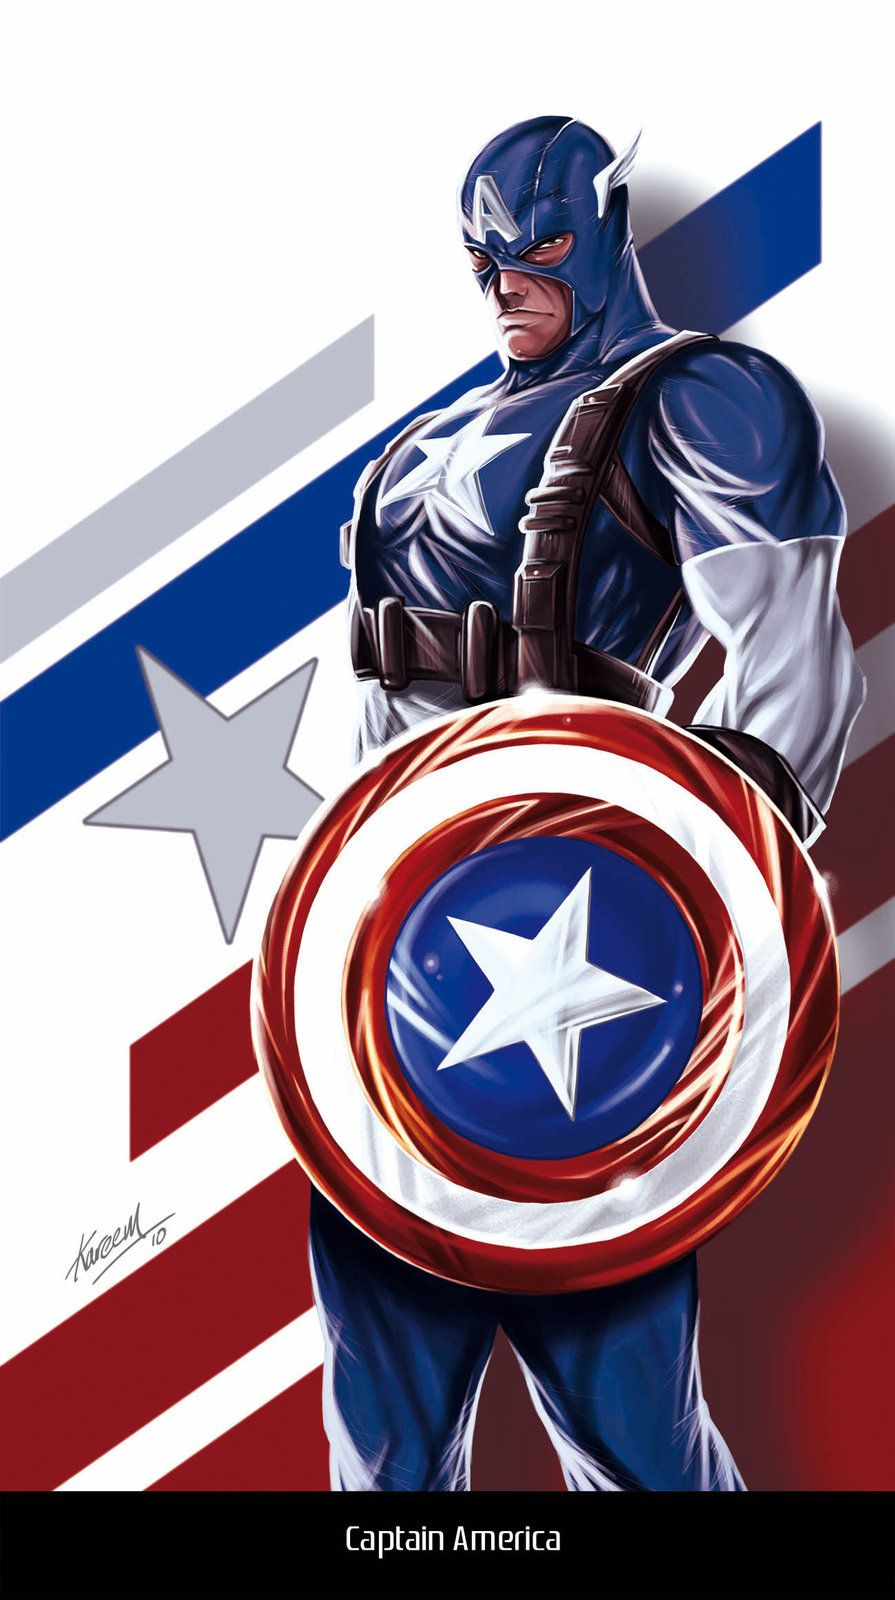 Captain America, Kareem Ahmed on ArtStation at https://www.artstation.com/artwork/captain-america-505c4513-17b4-4f3b-b03c-9b19a511340b